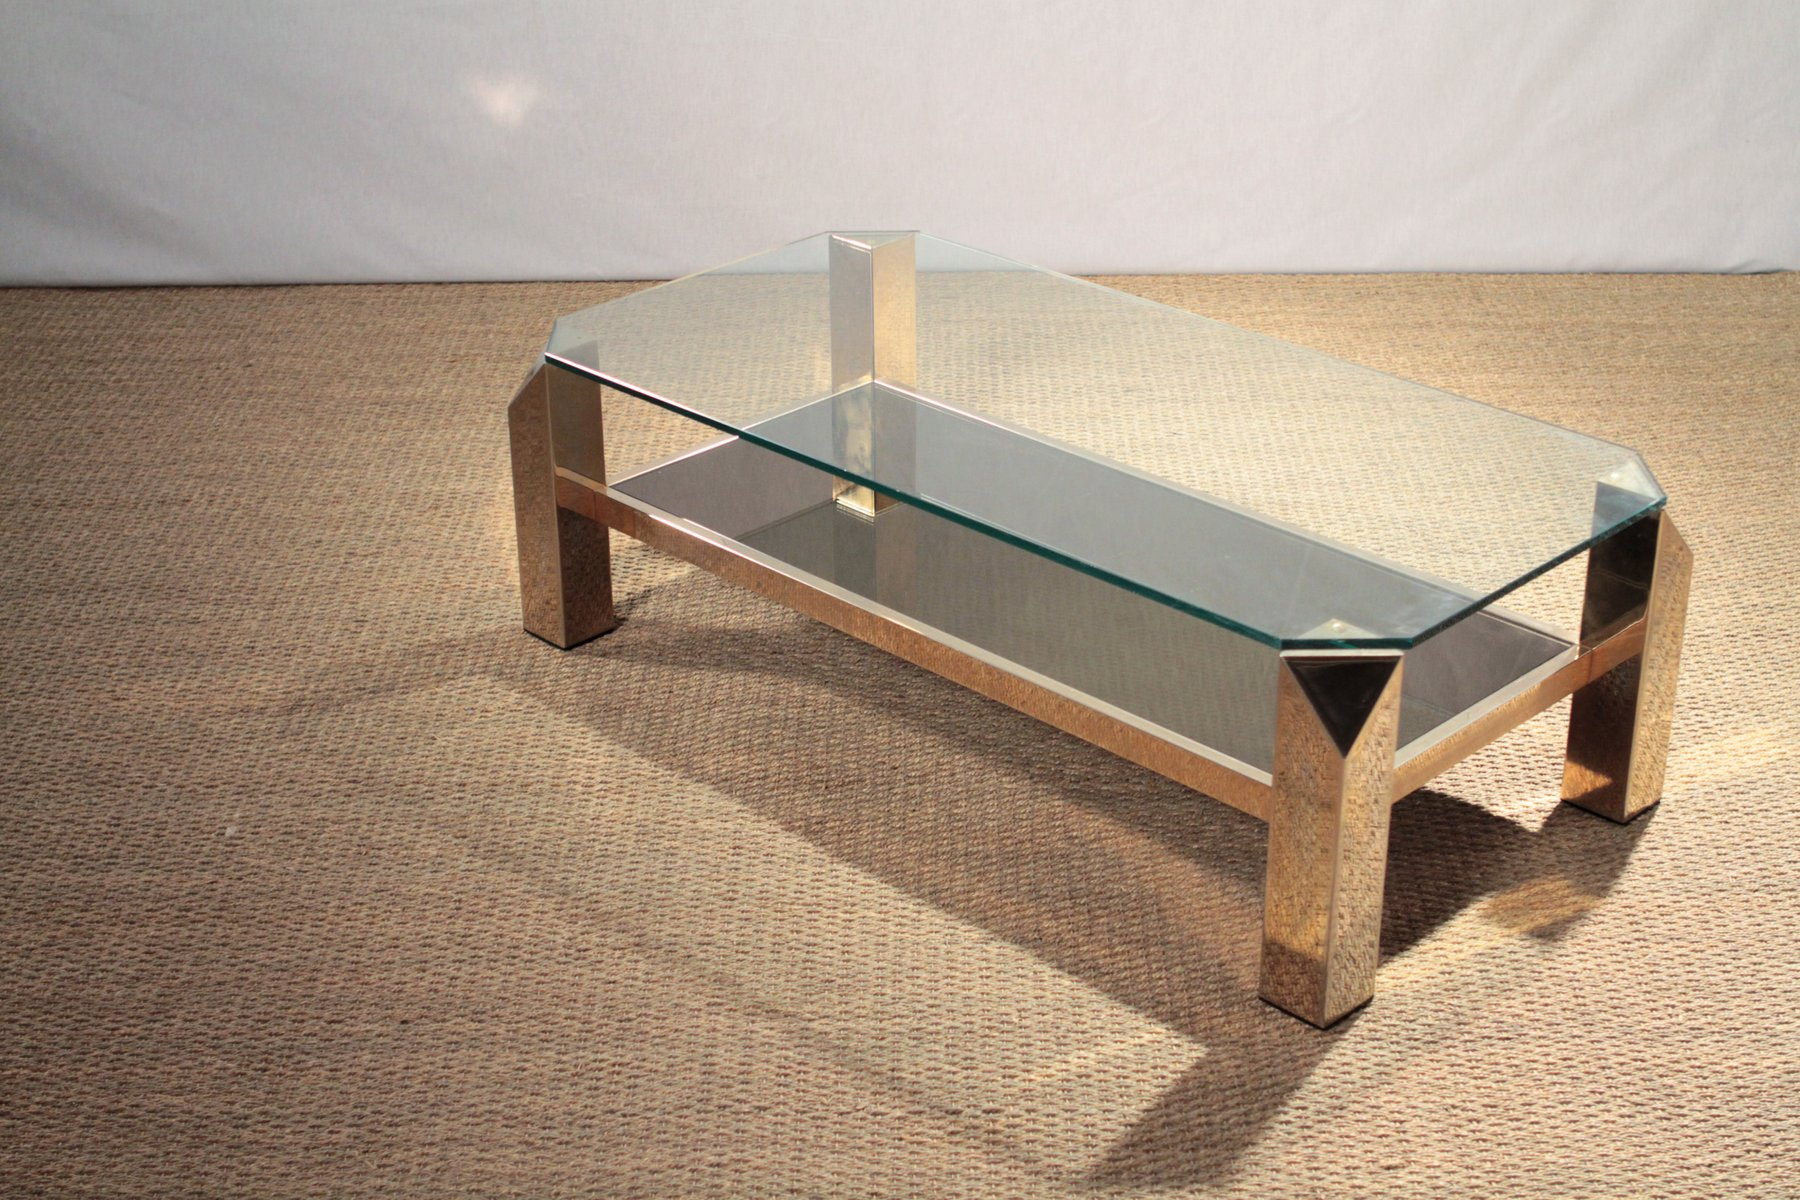 Exceptional Gilded Coffee Table From Belgochrom, 1970s